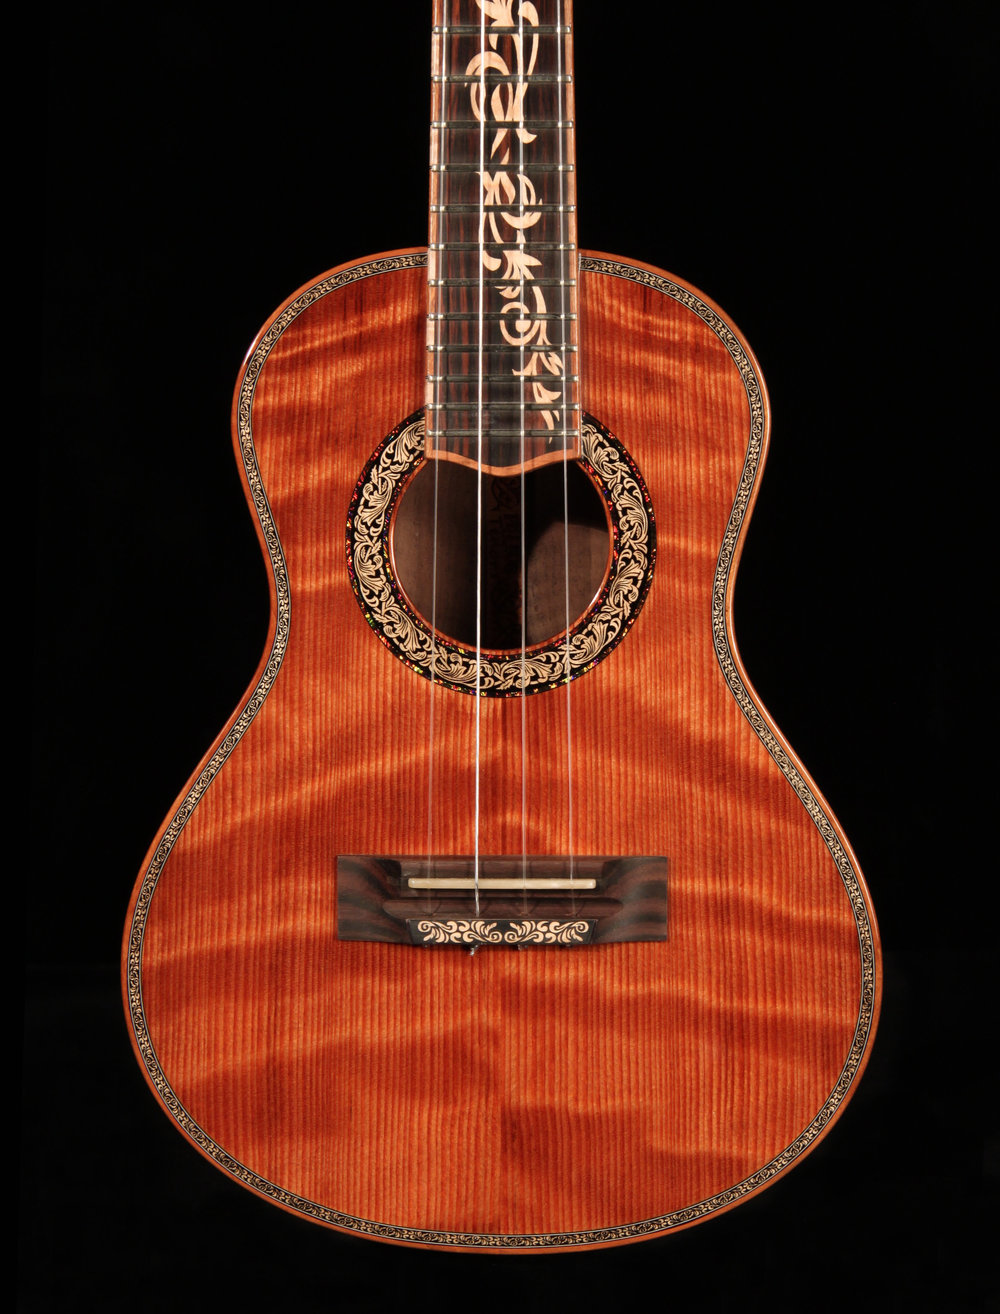 The Florentine Walnut Tenor